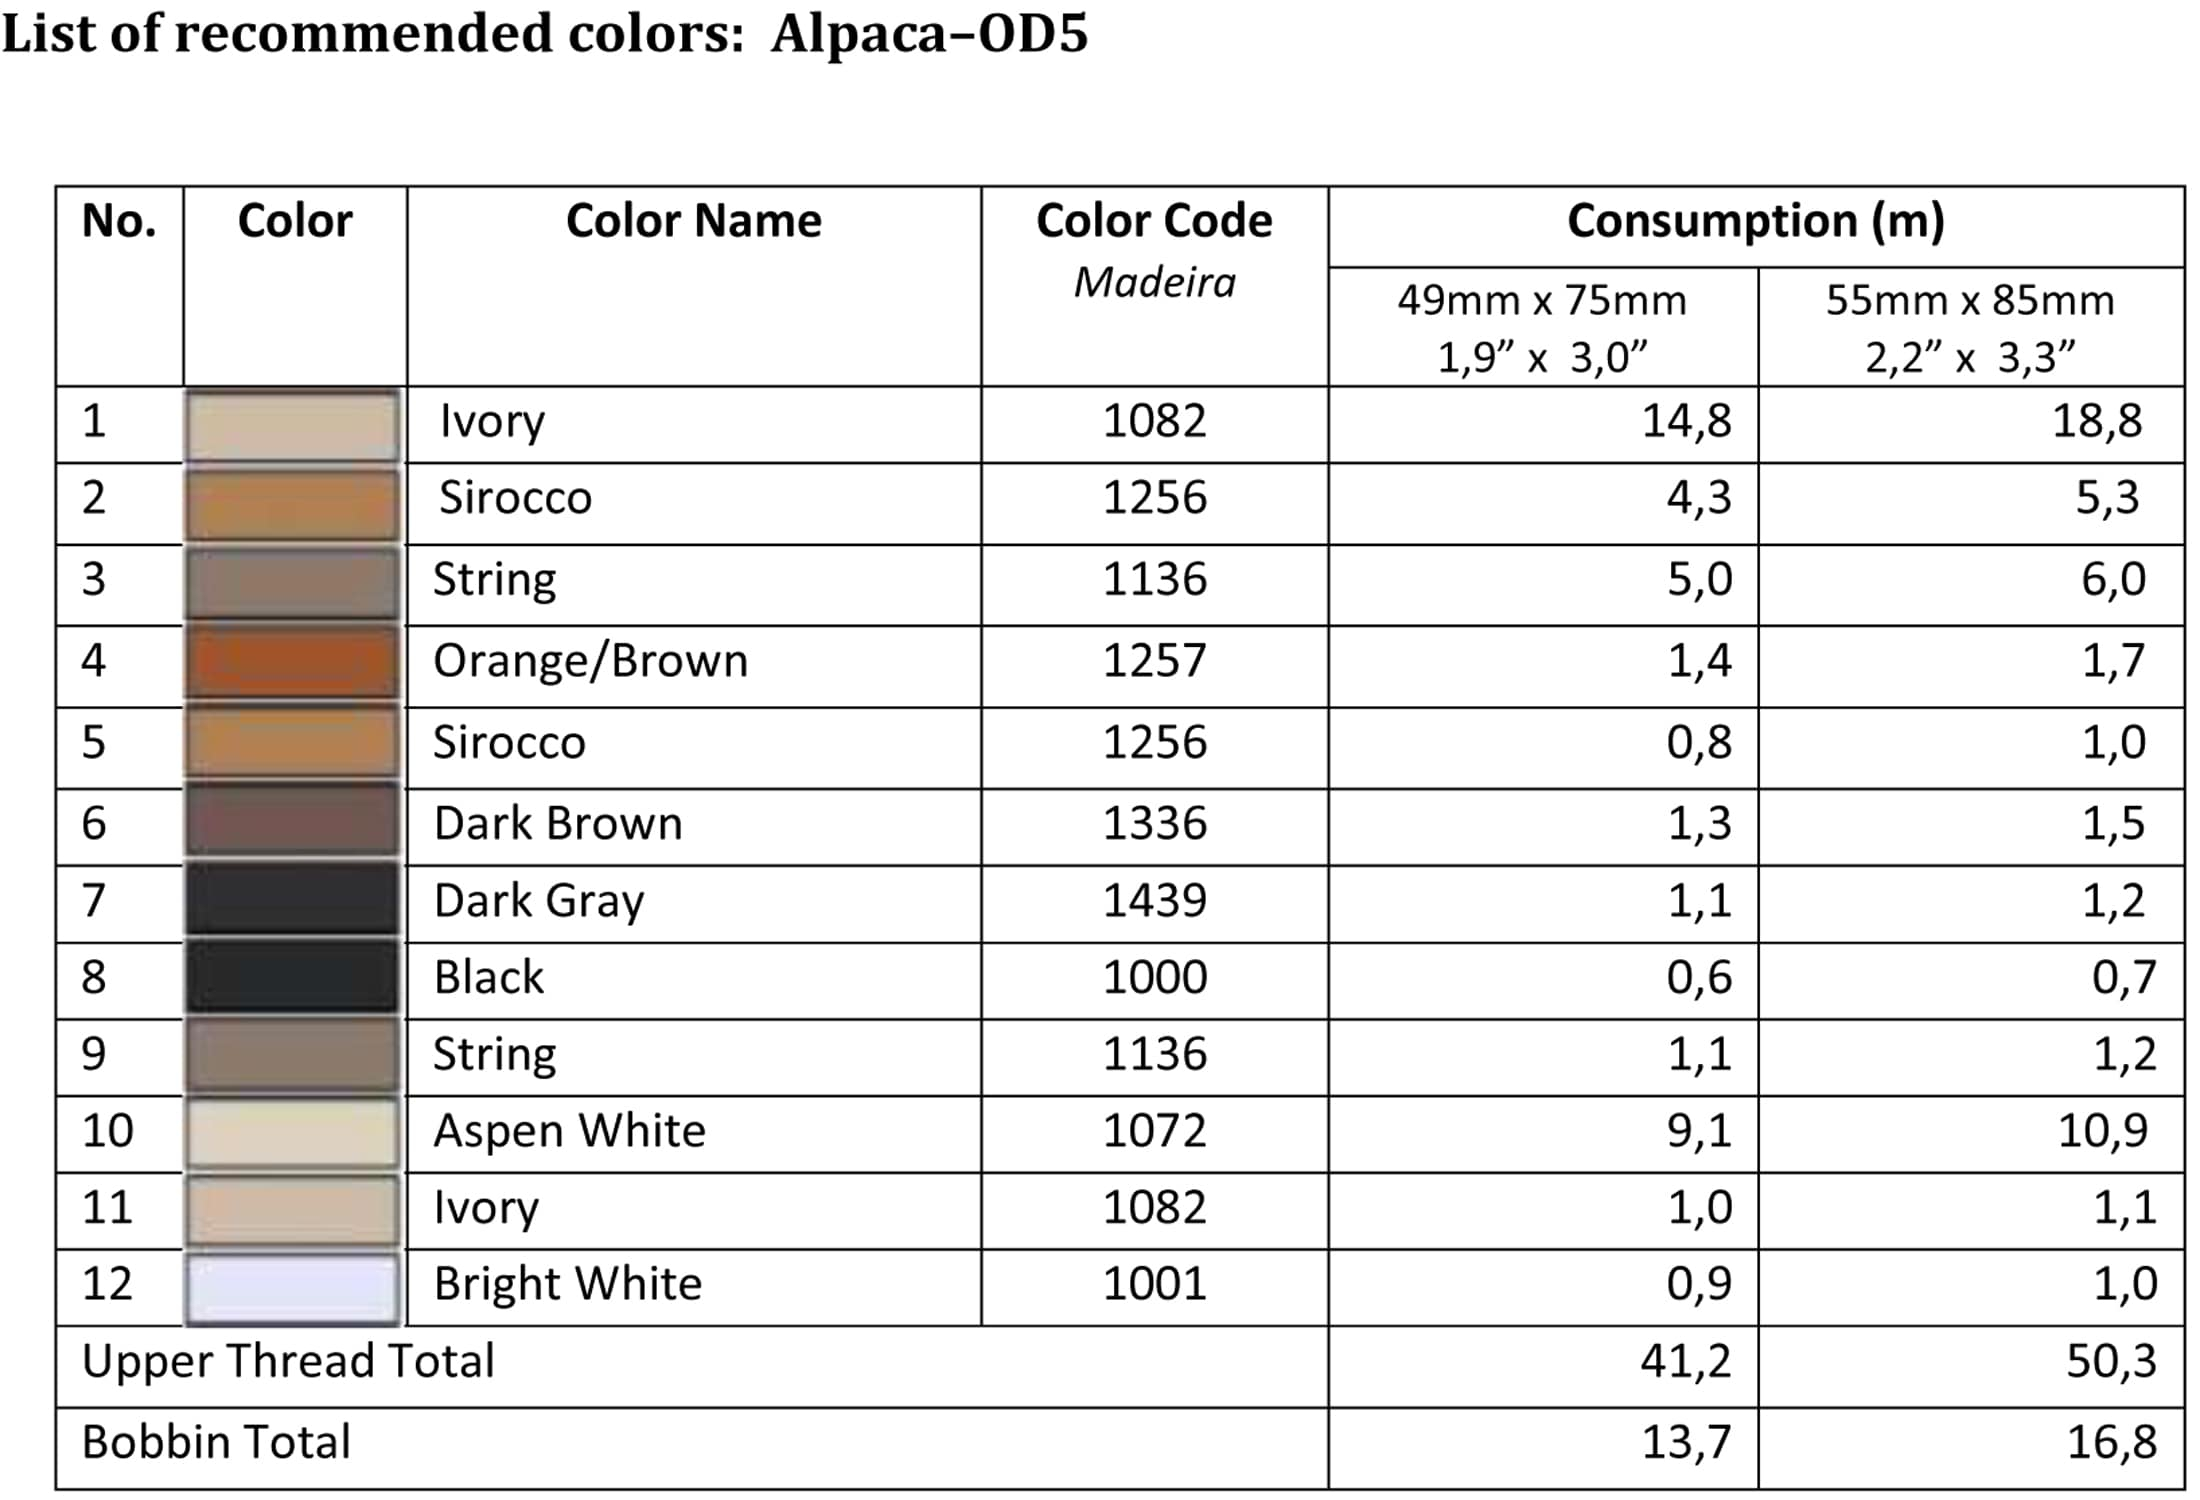 List of recommended colors - OD5